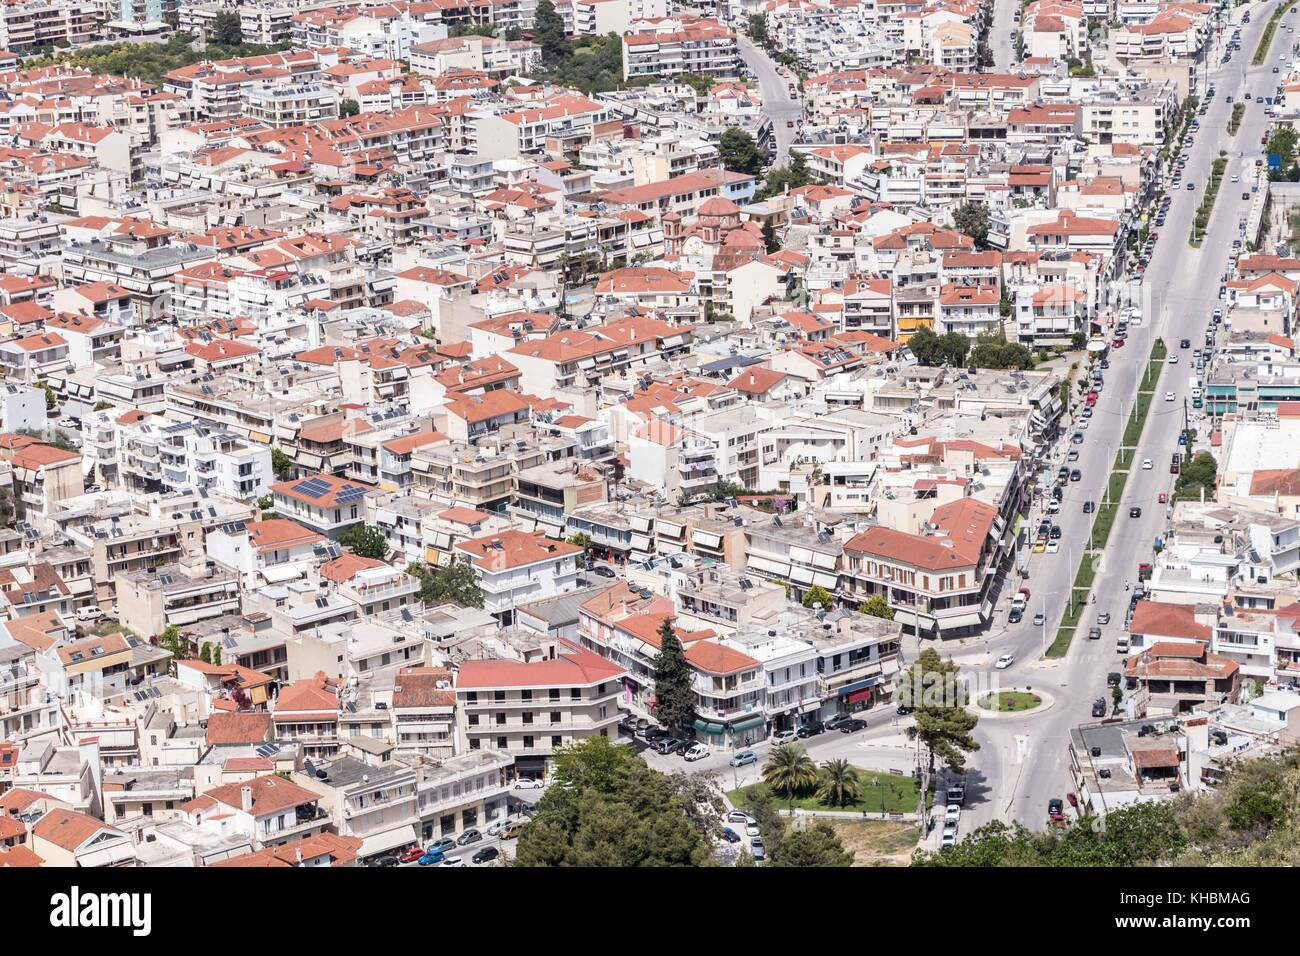 Panoramic view of Nafplio town seen from Palamidi Castle, Greece Stock Photo